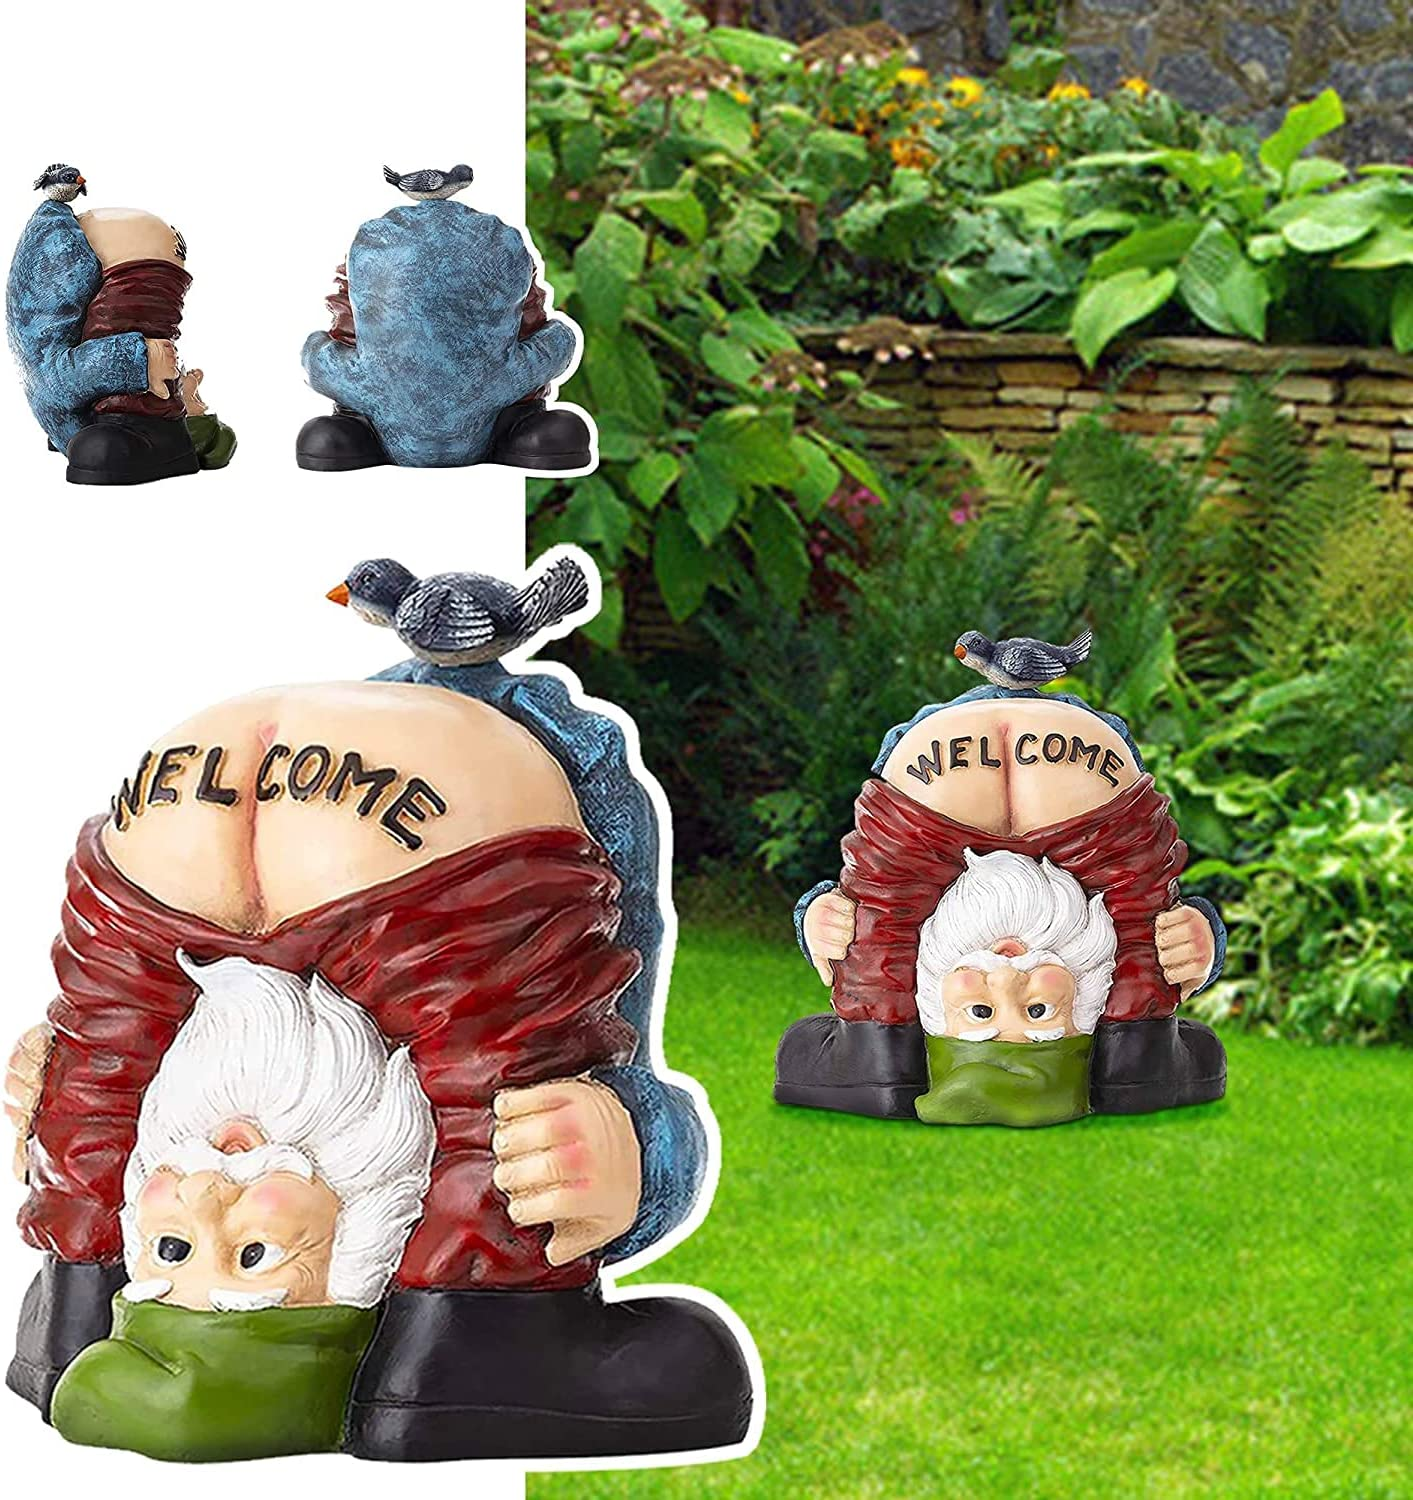 NARFIRE Family Decorations Dwarves Gnomes Resin Decorations Garden Crafts Statues Funny Welcome Decorations